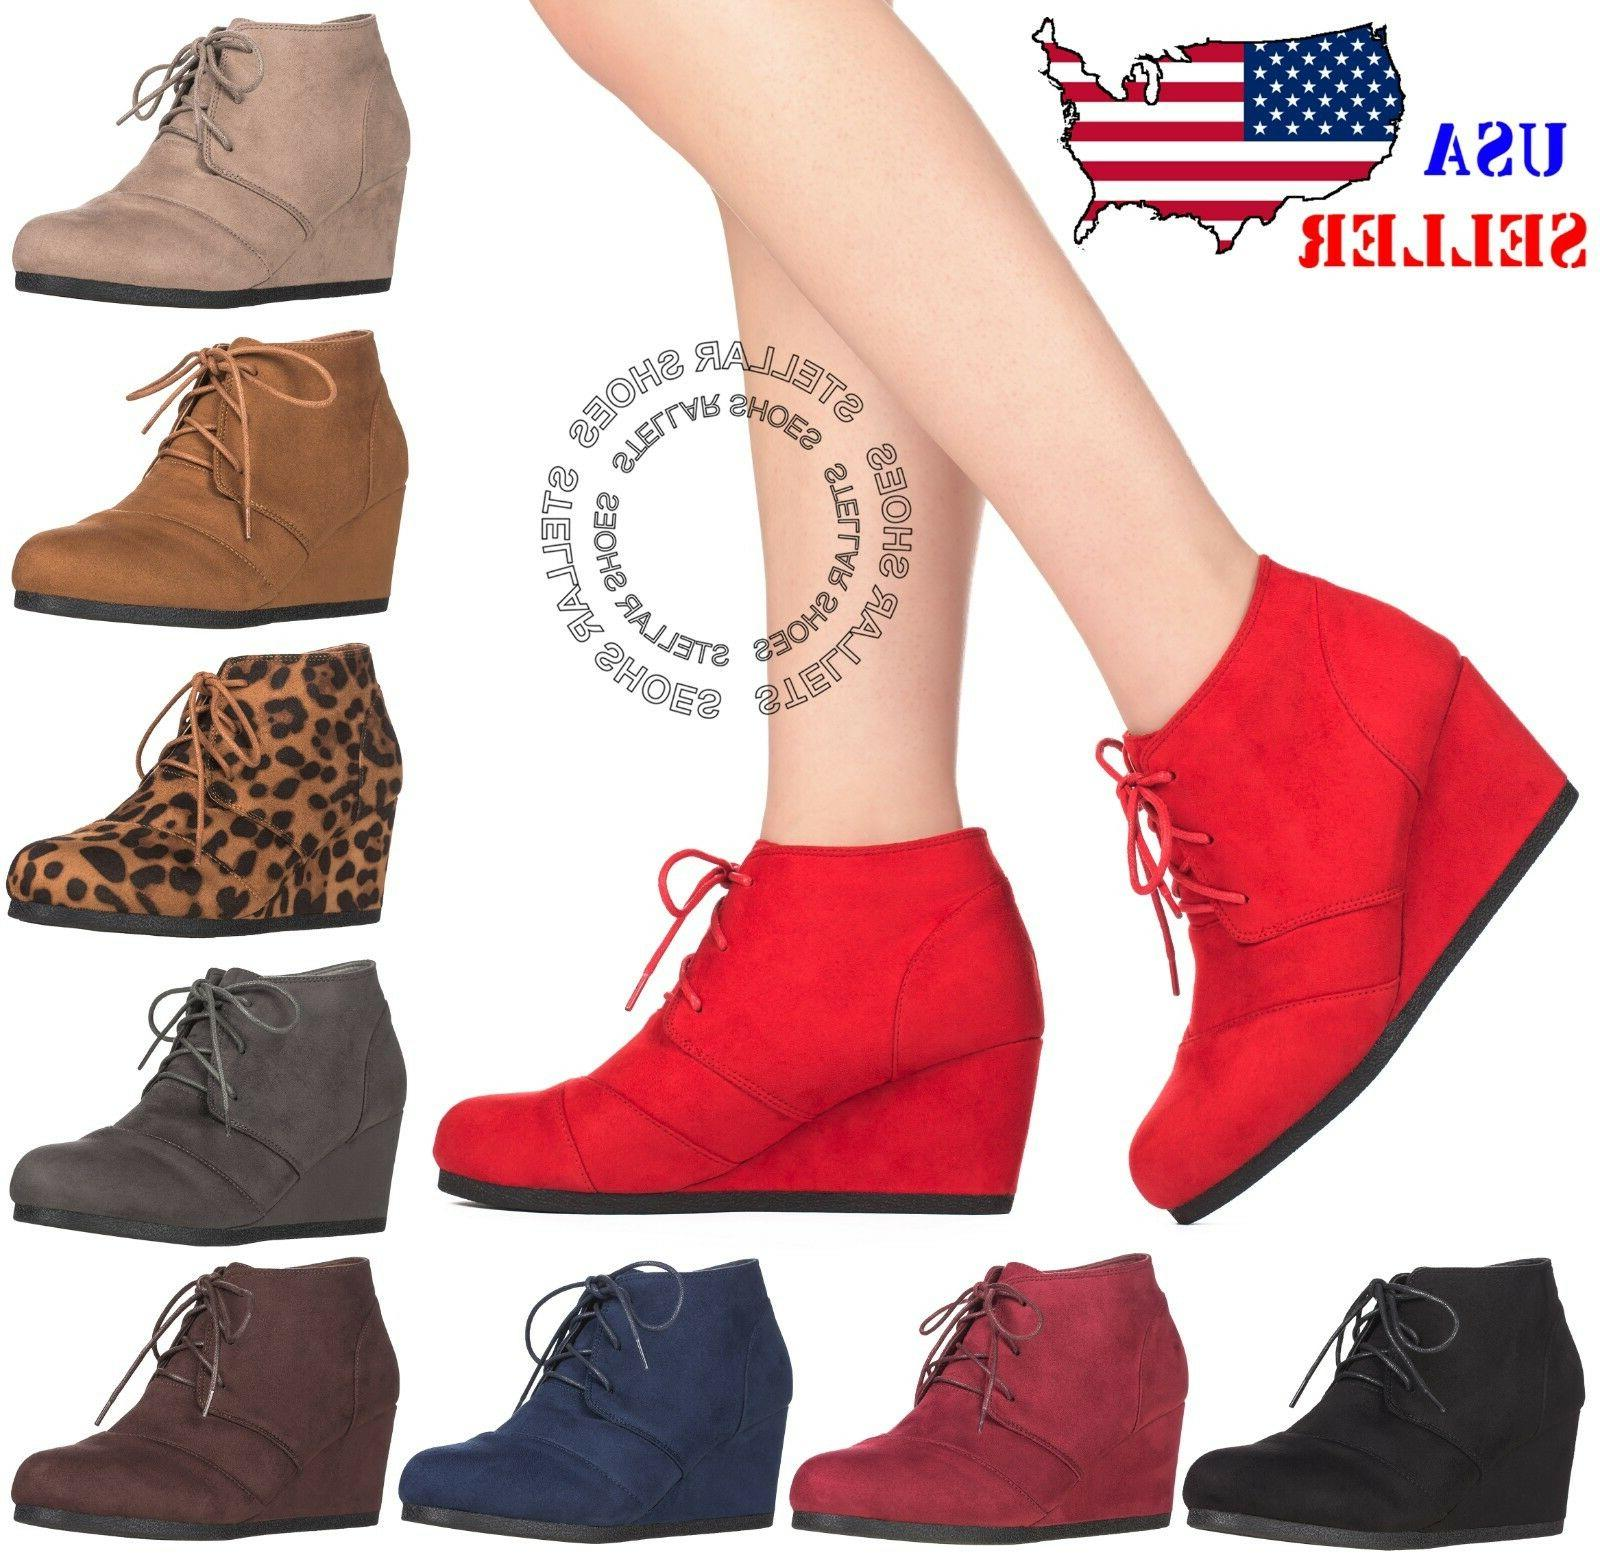 39912bec25a98 New Women's Round Toe Lace Up Wedge Heels